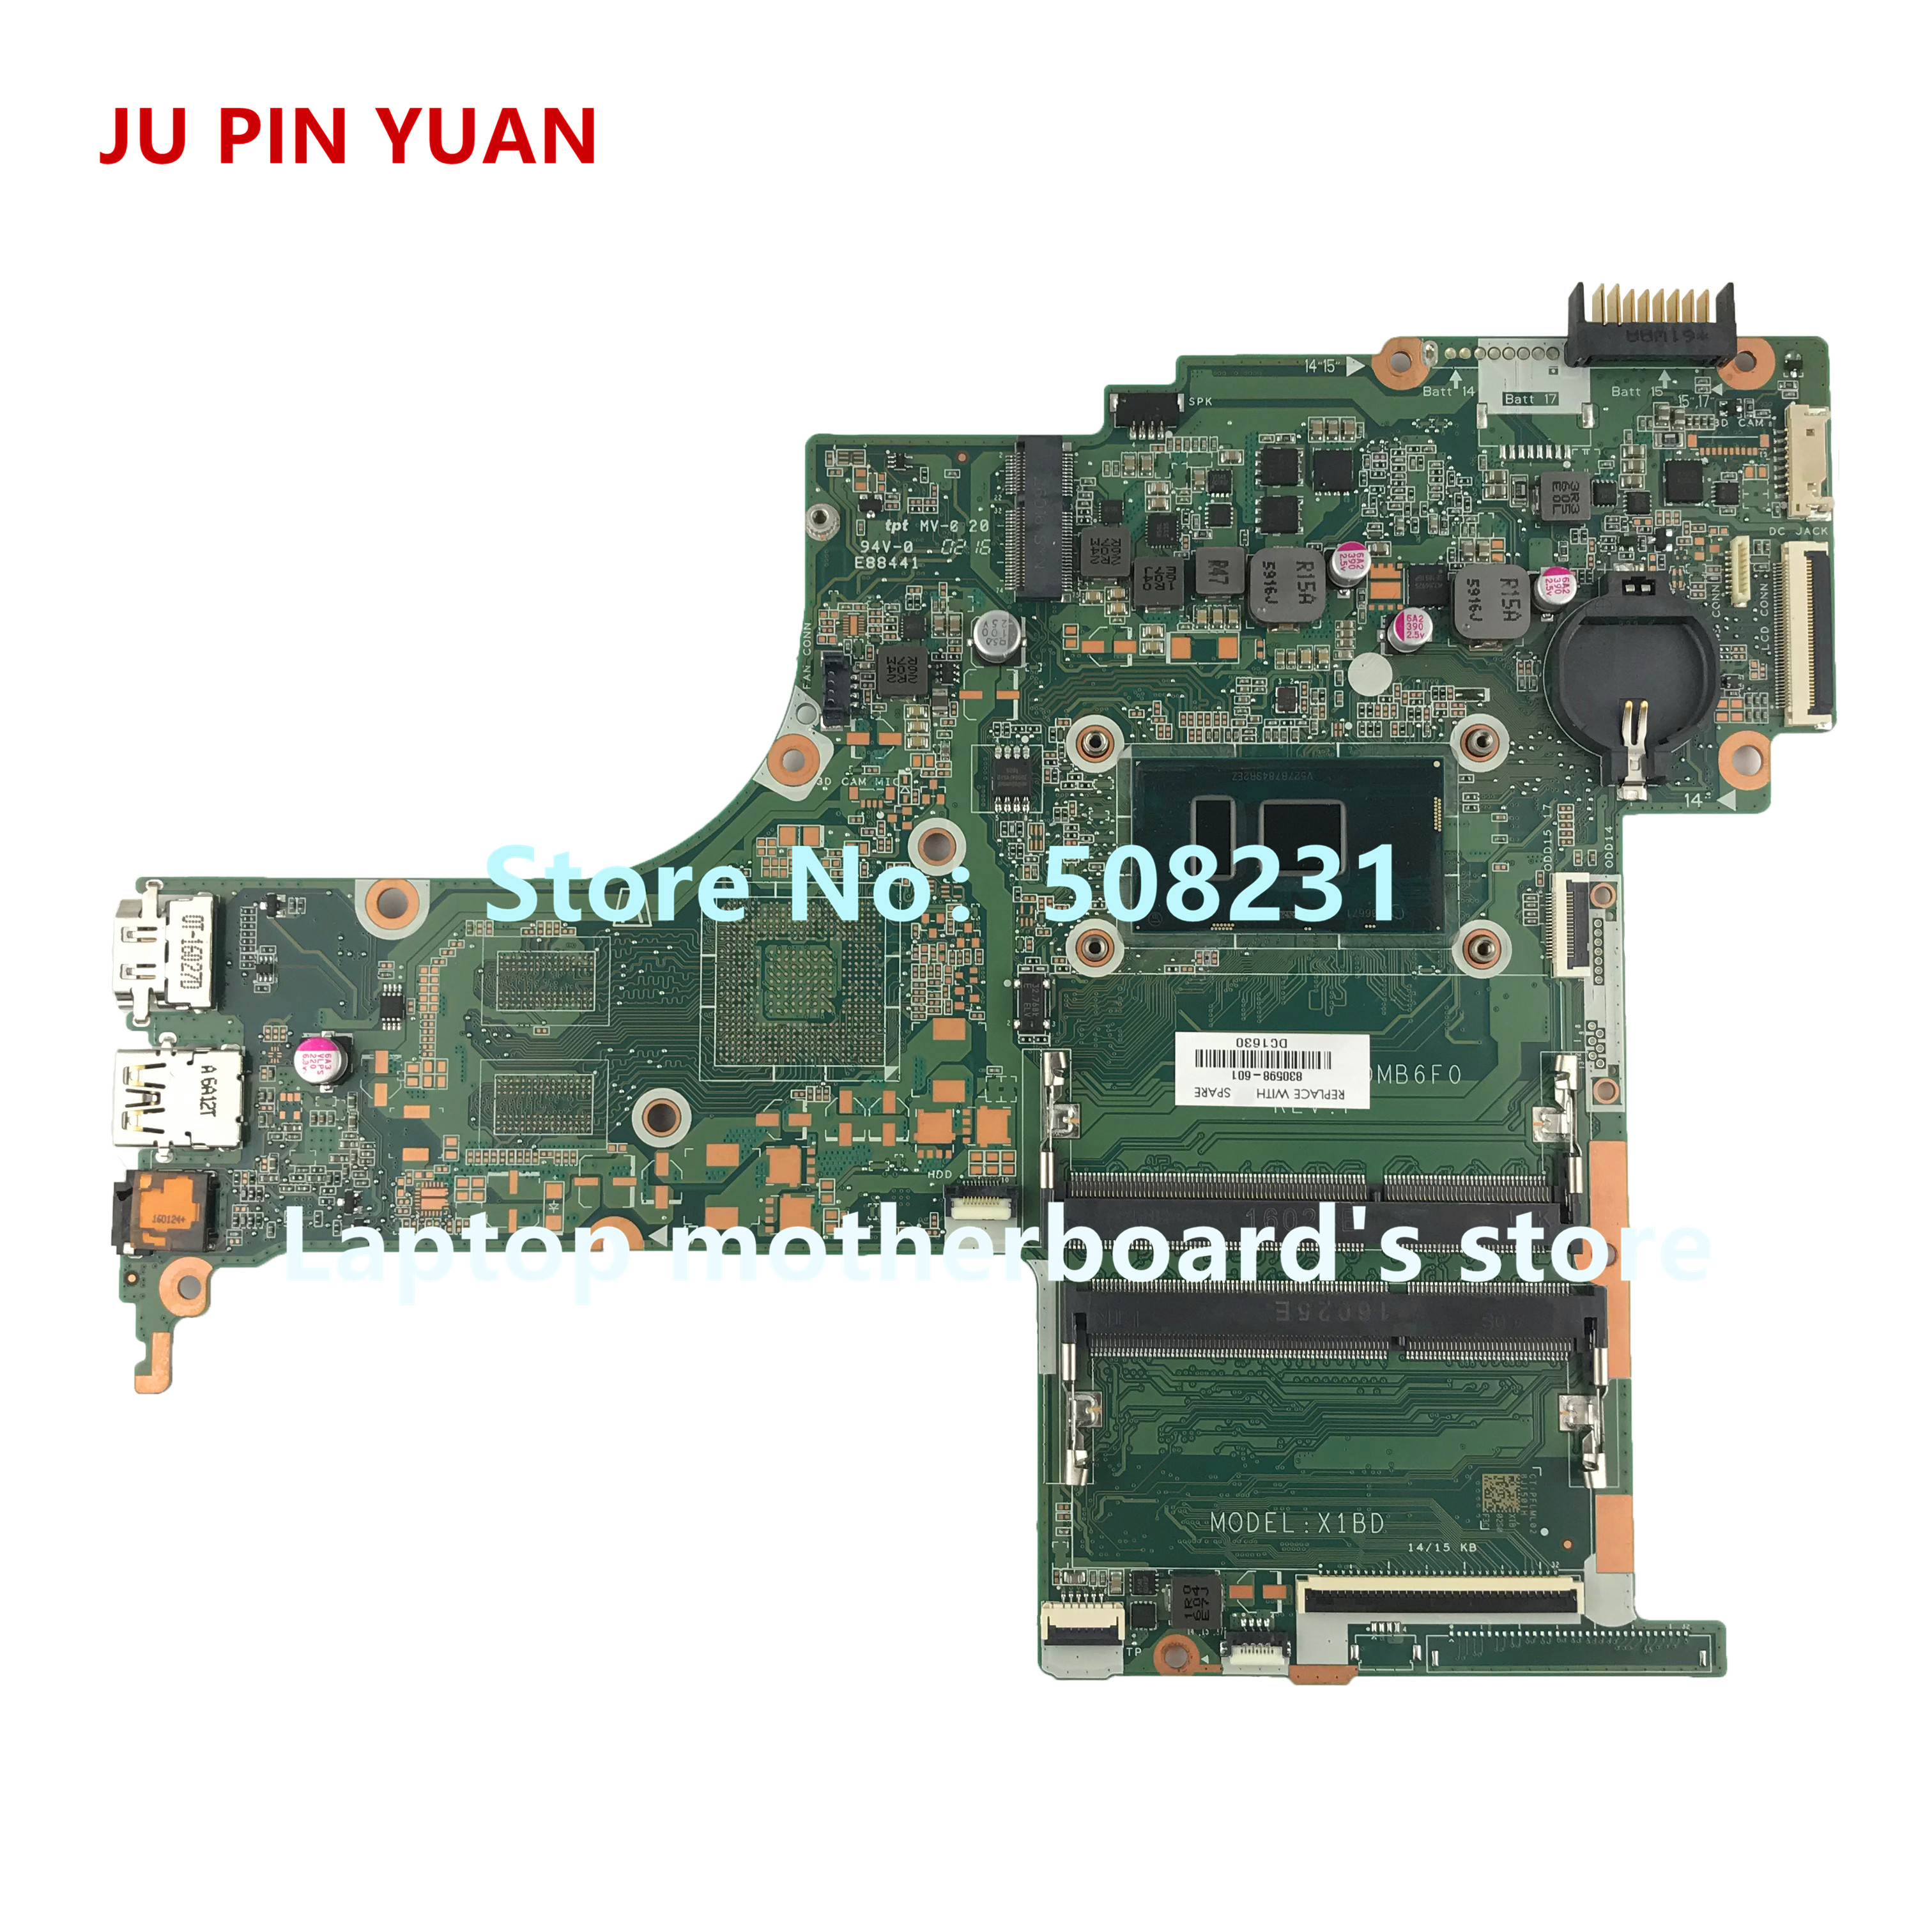 JU PIN YUAN 830598 601 mainboard for HP Pavilion Notebook 15 AB 15 AB252NR Laptop